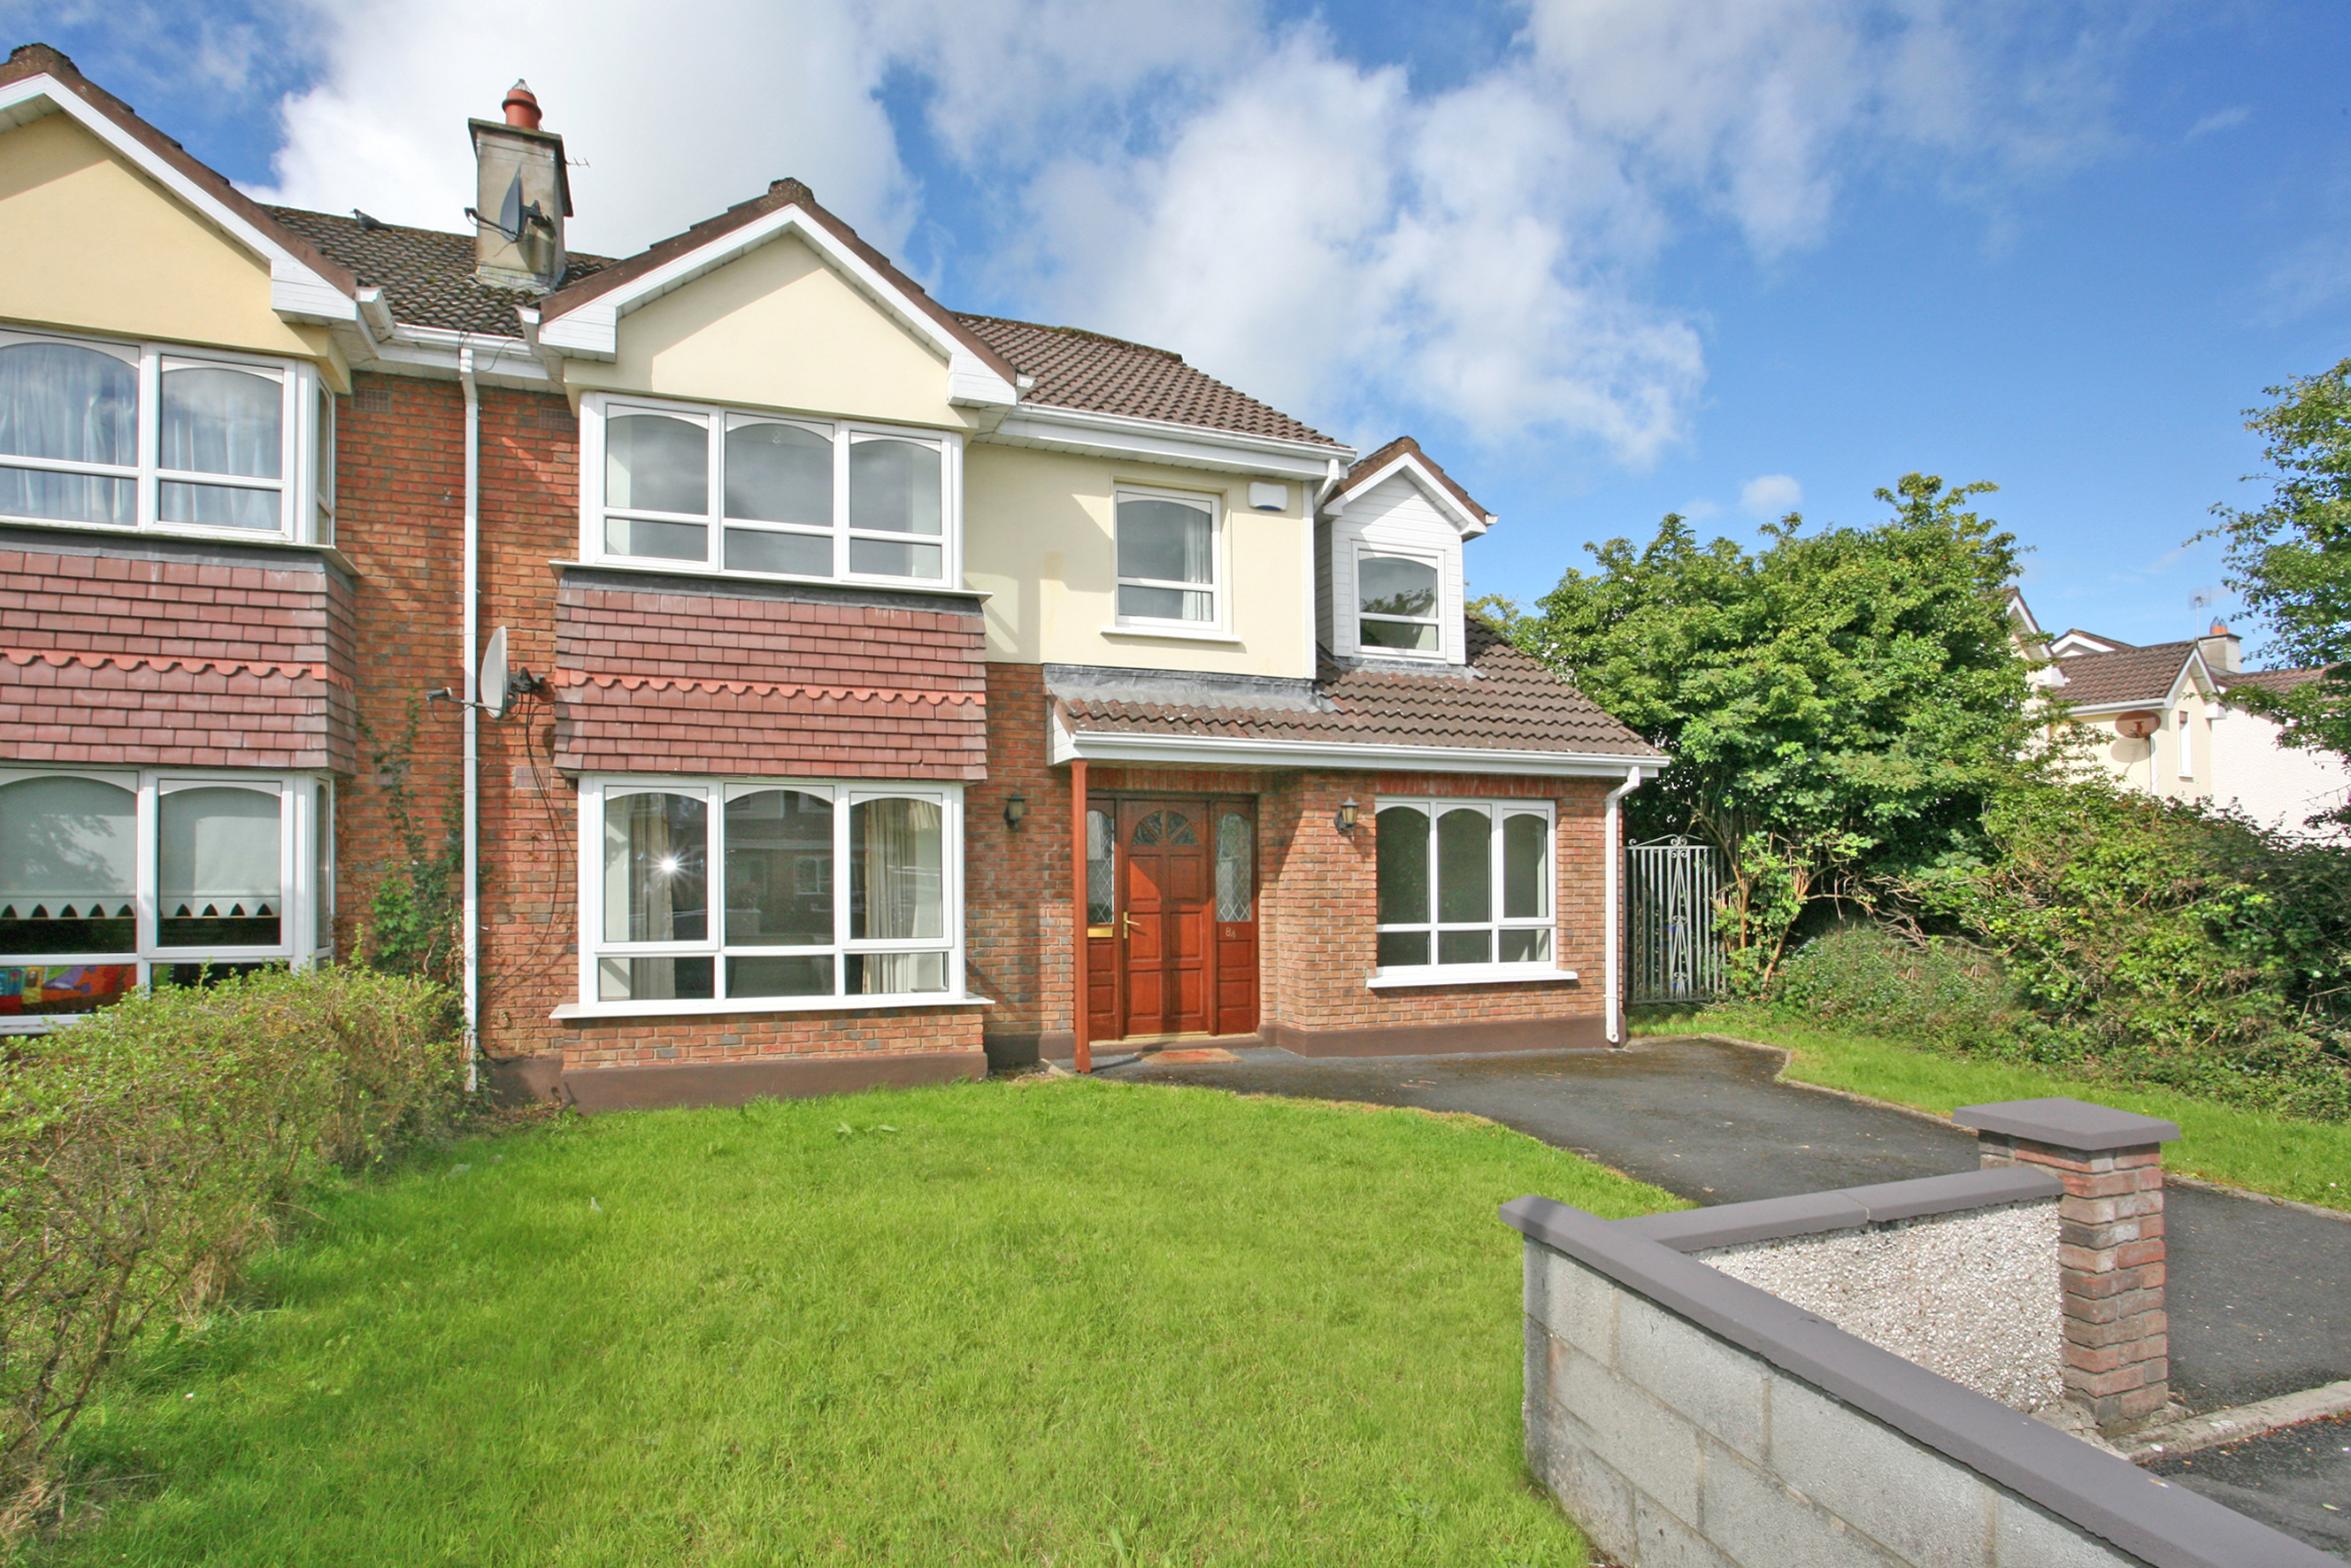 No.84 Oakfield, Father Russell Road, Raheen, Co. Limerick